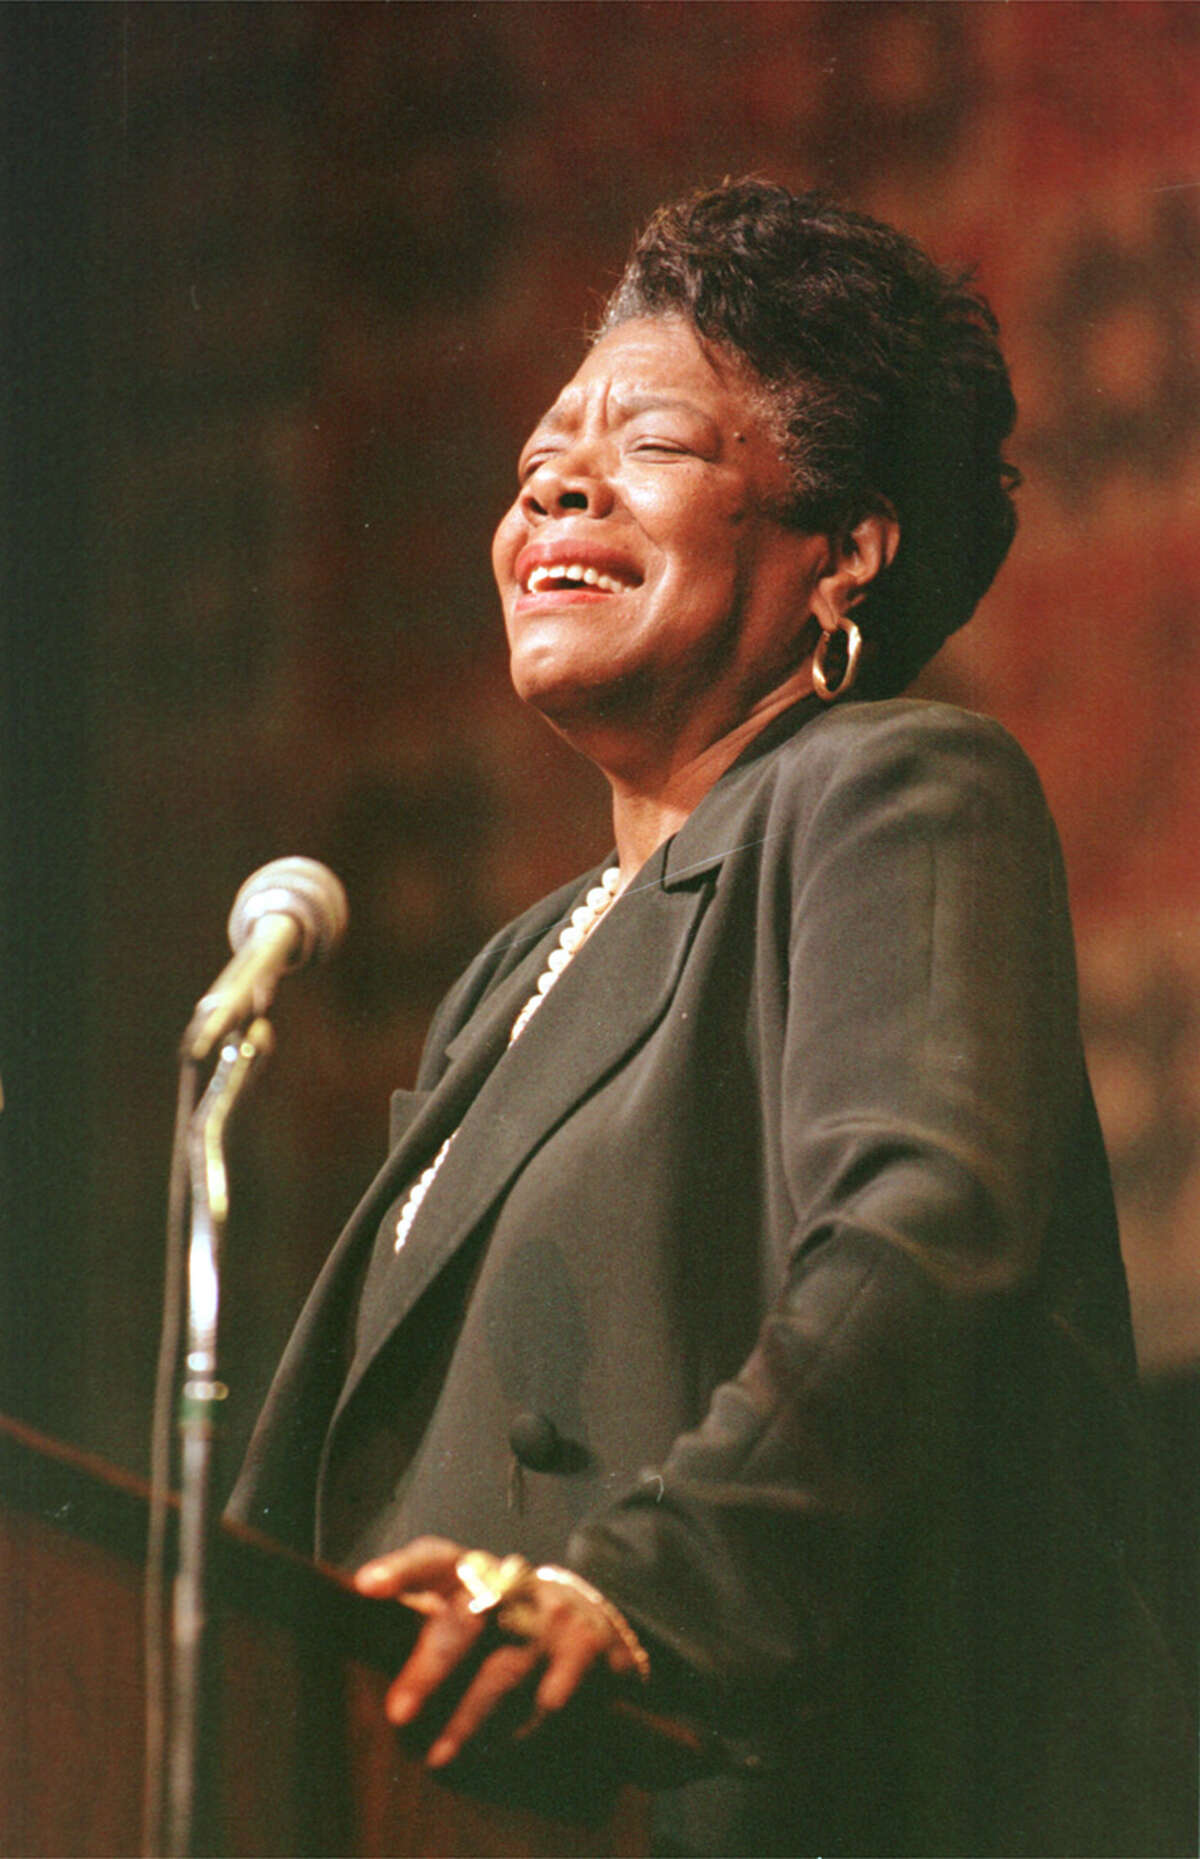 Maya Angelou wowed guests at Cullen Performance Hall on the University of Houston campus in 1997.